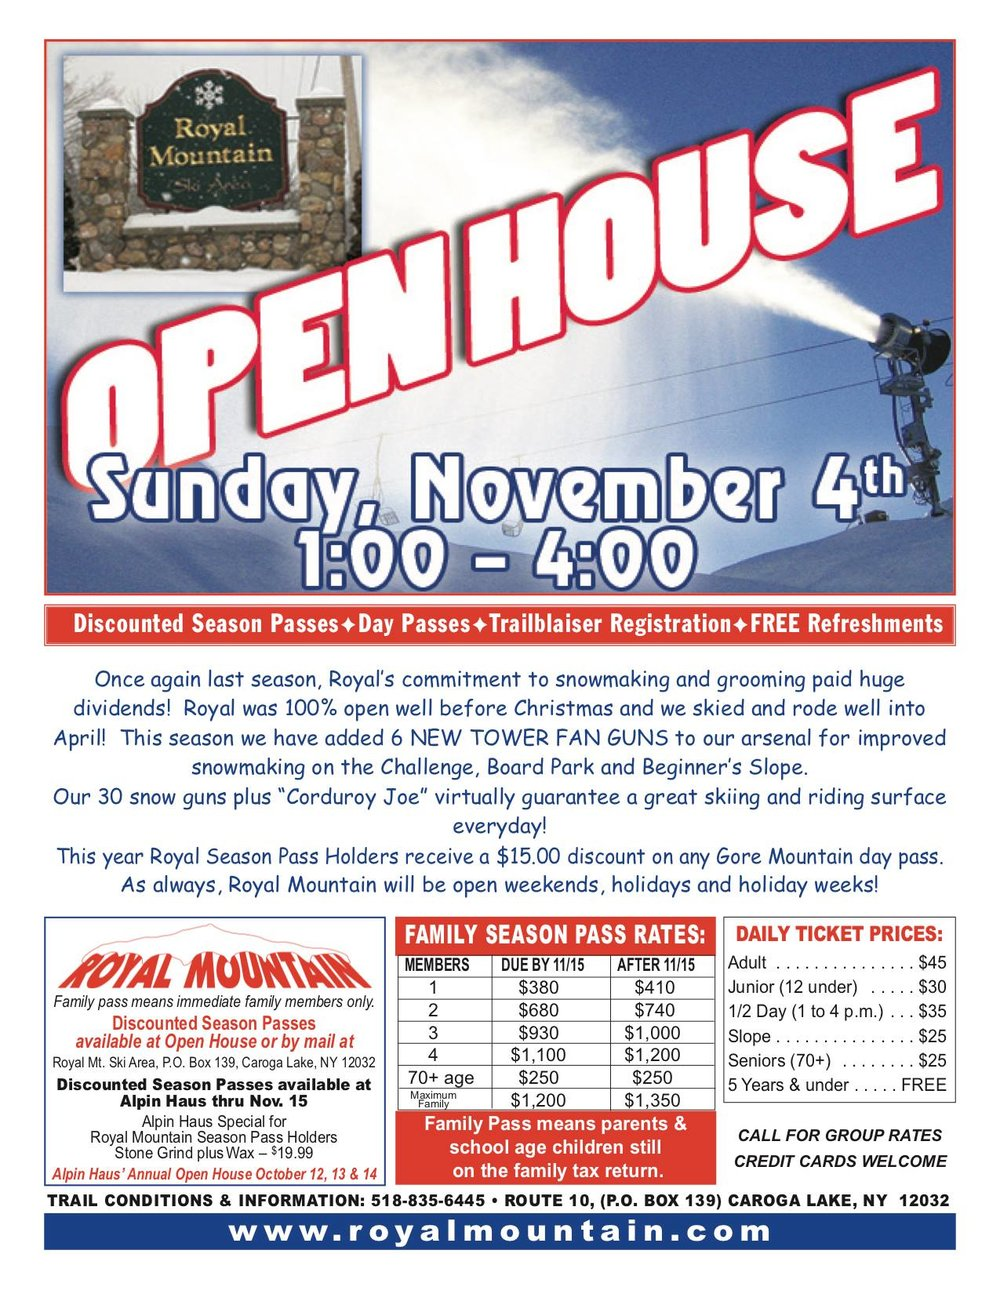 Open House - November 4th